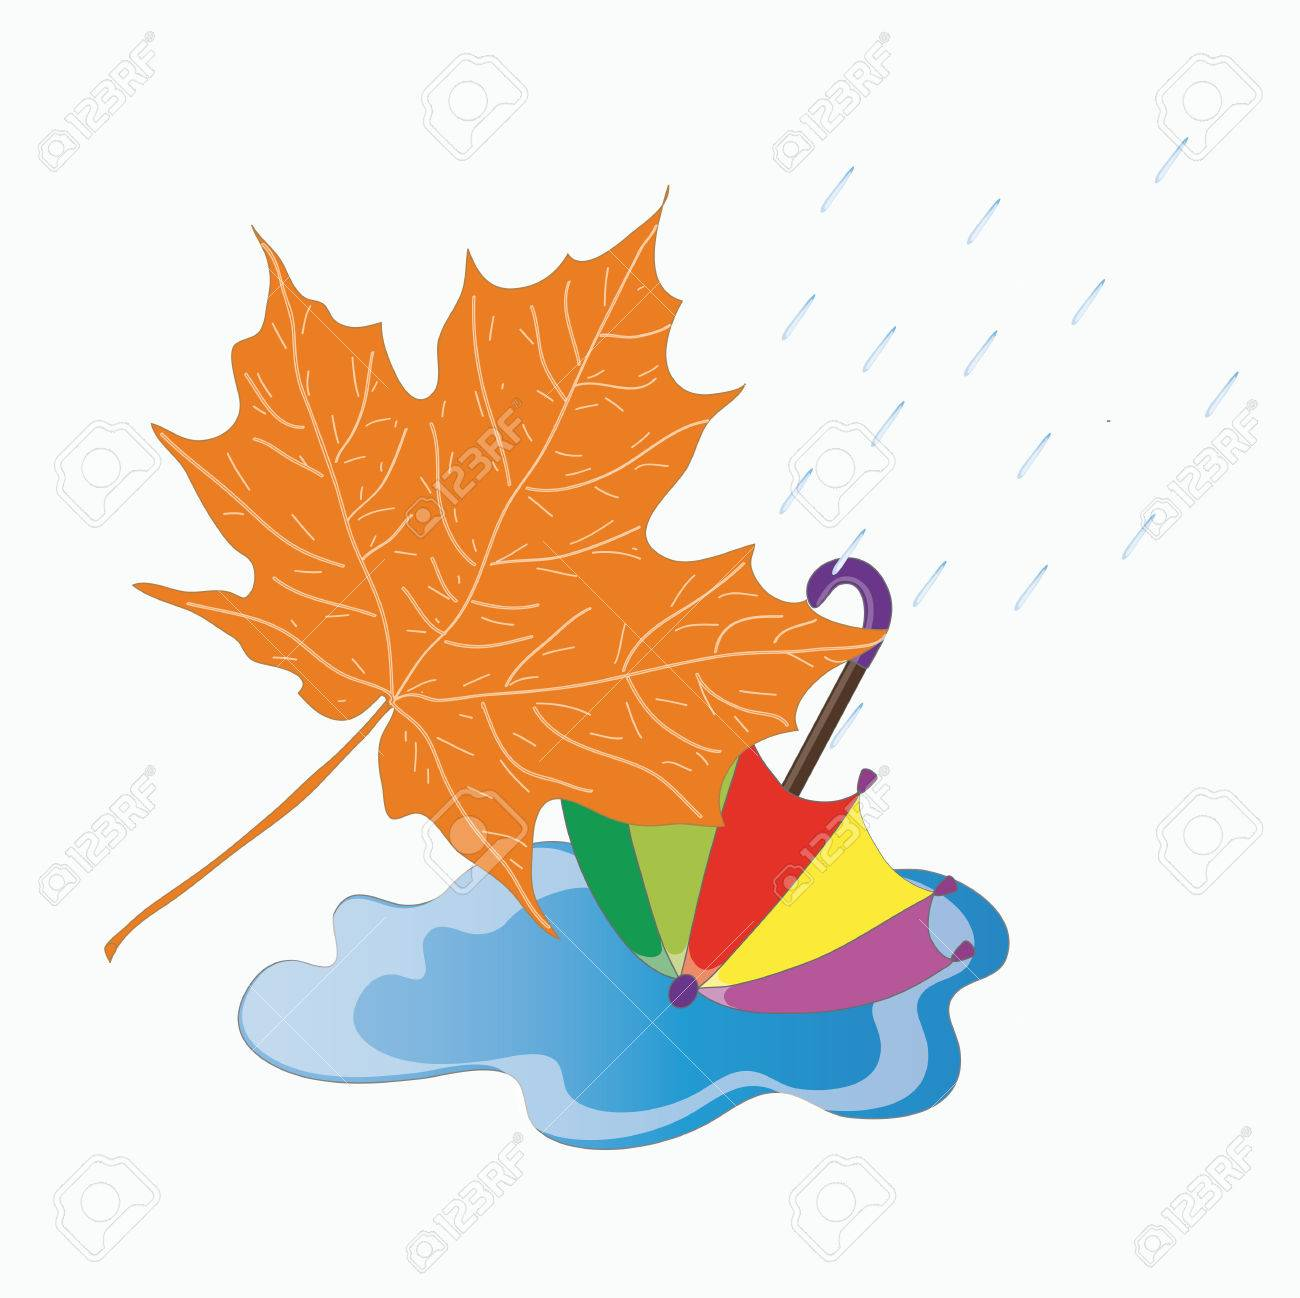 Image result for autumn leaves and puddles clipart